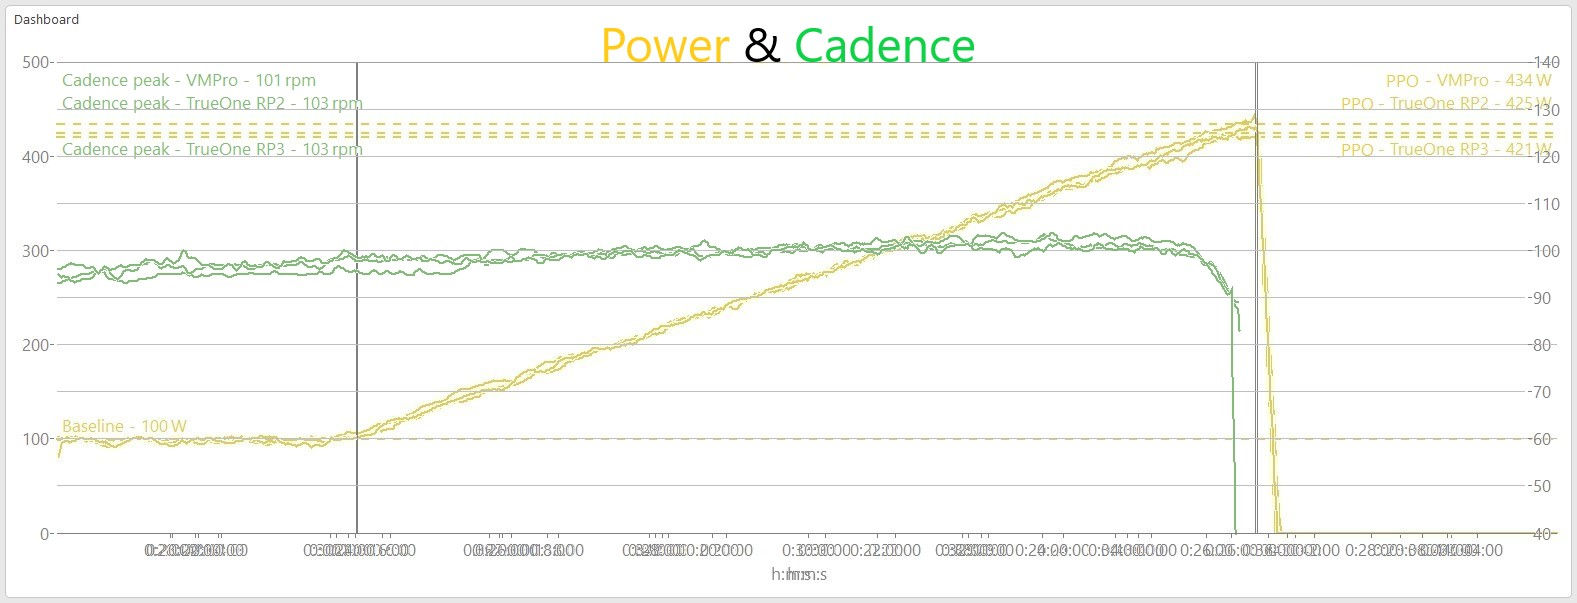 Power_Cadence_Comparison